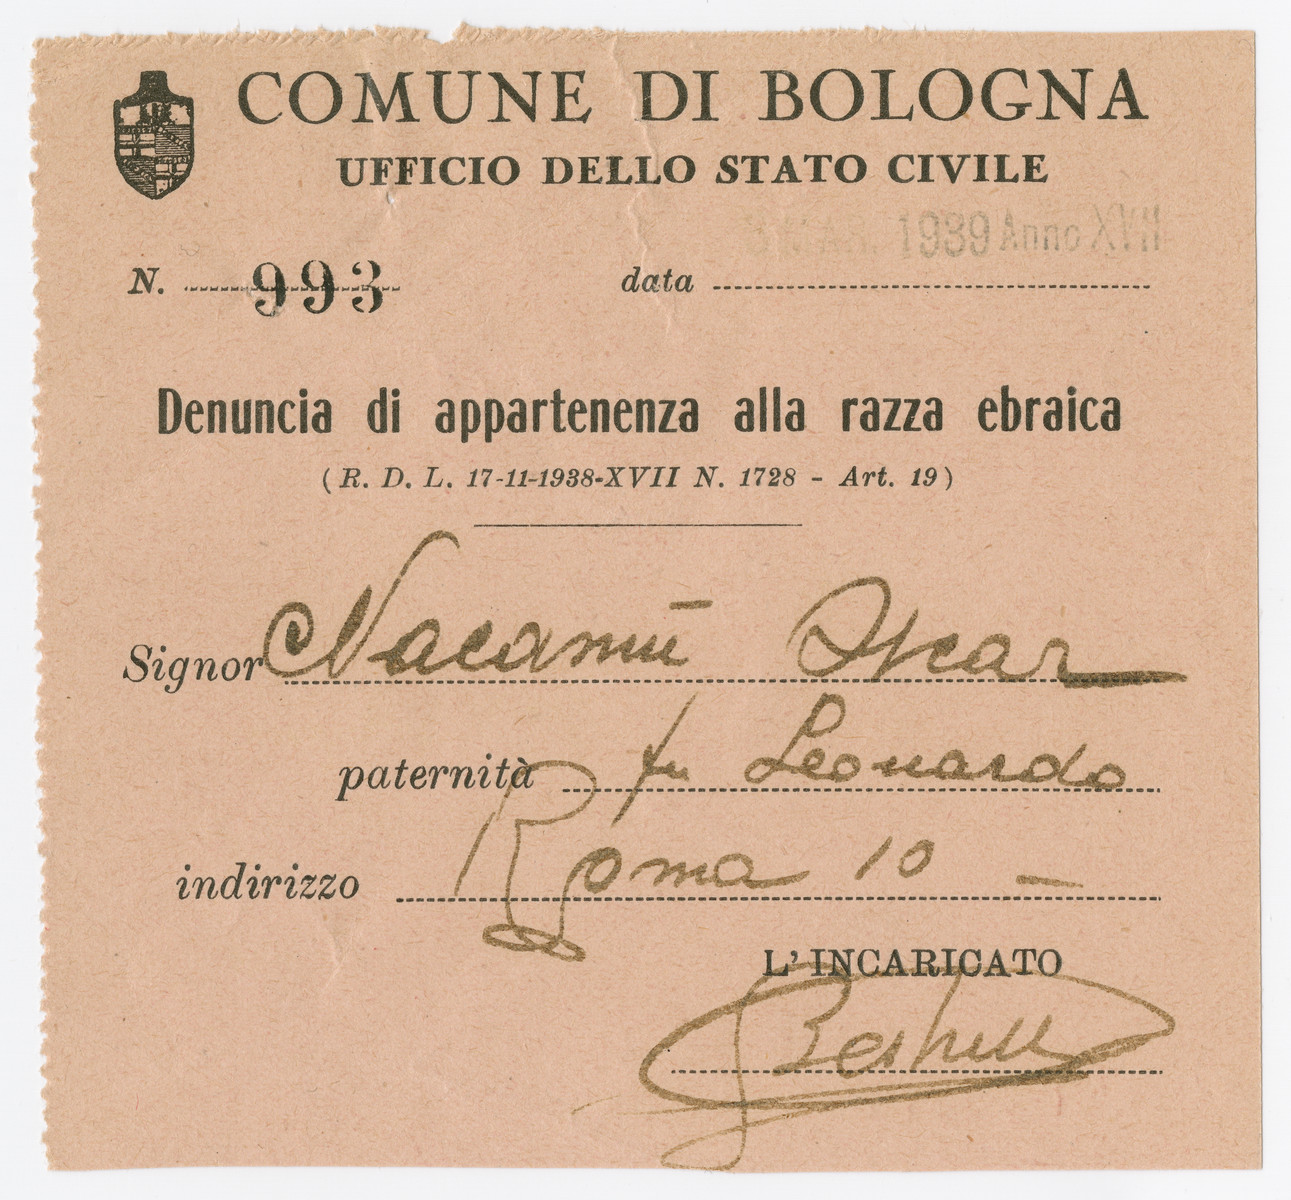 Document issued by the authorities of Bologna stating that Oscar Nacamu is a member of the Jewish race.